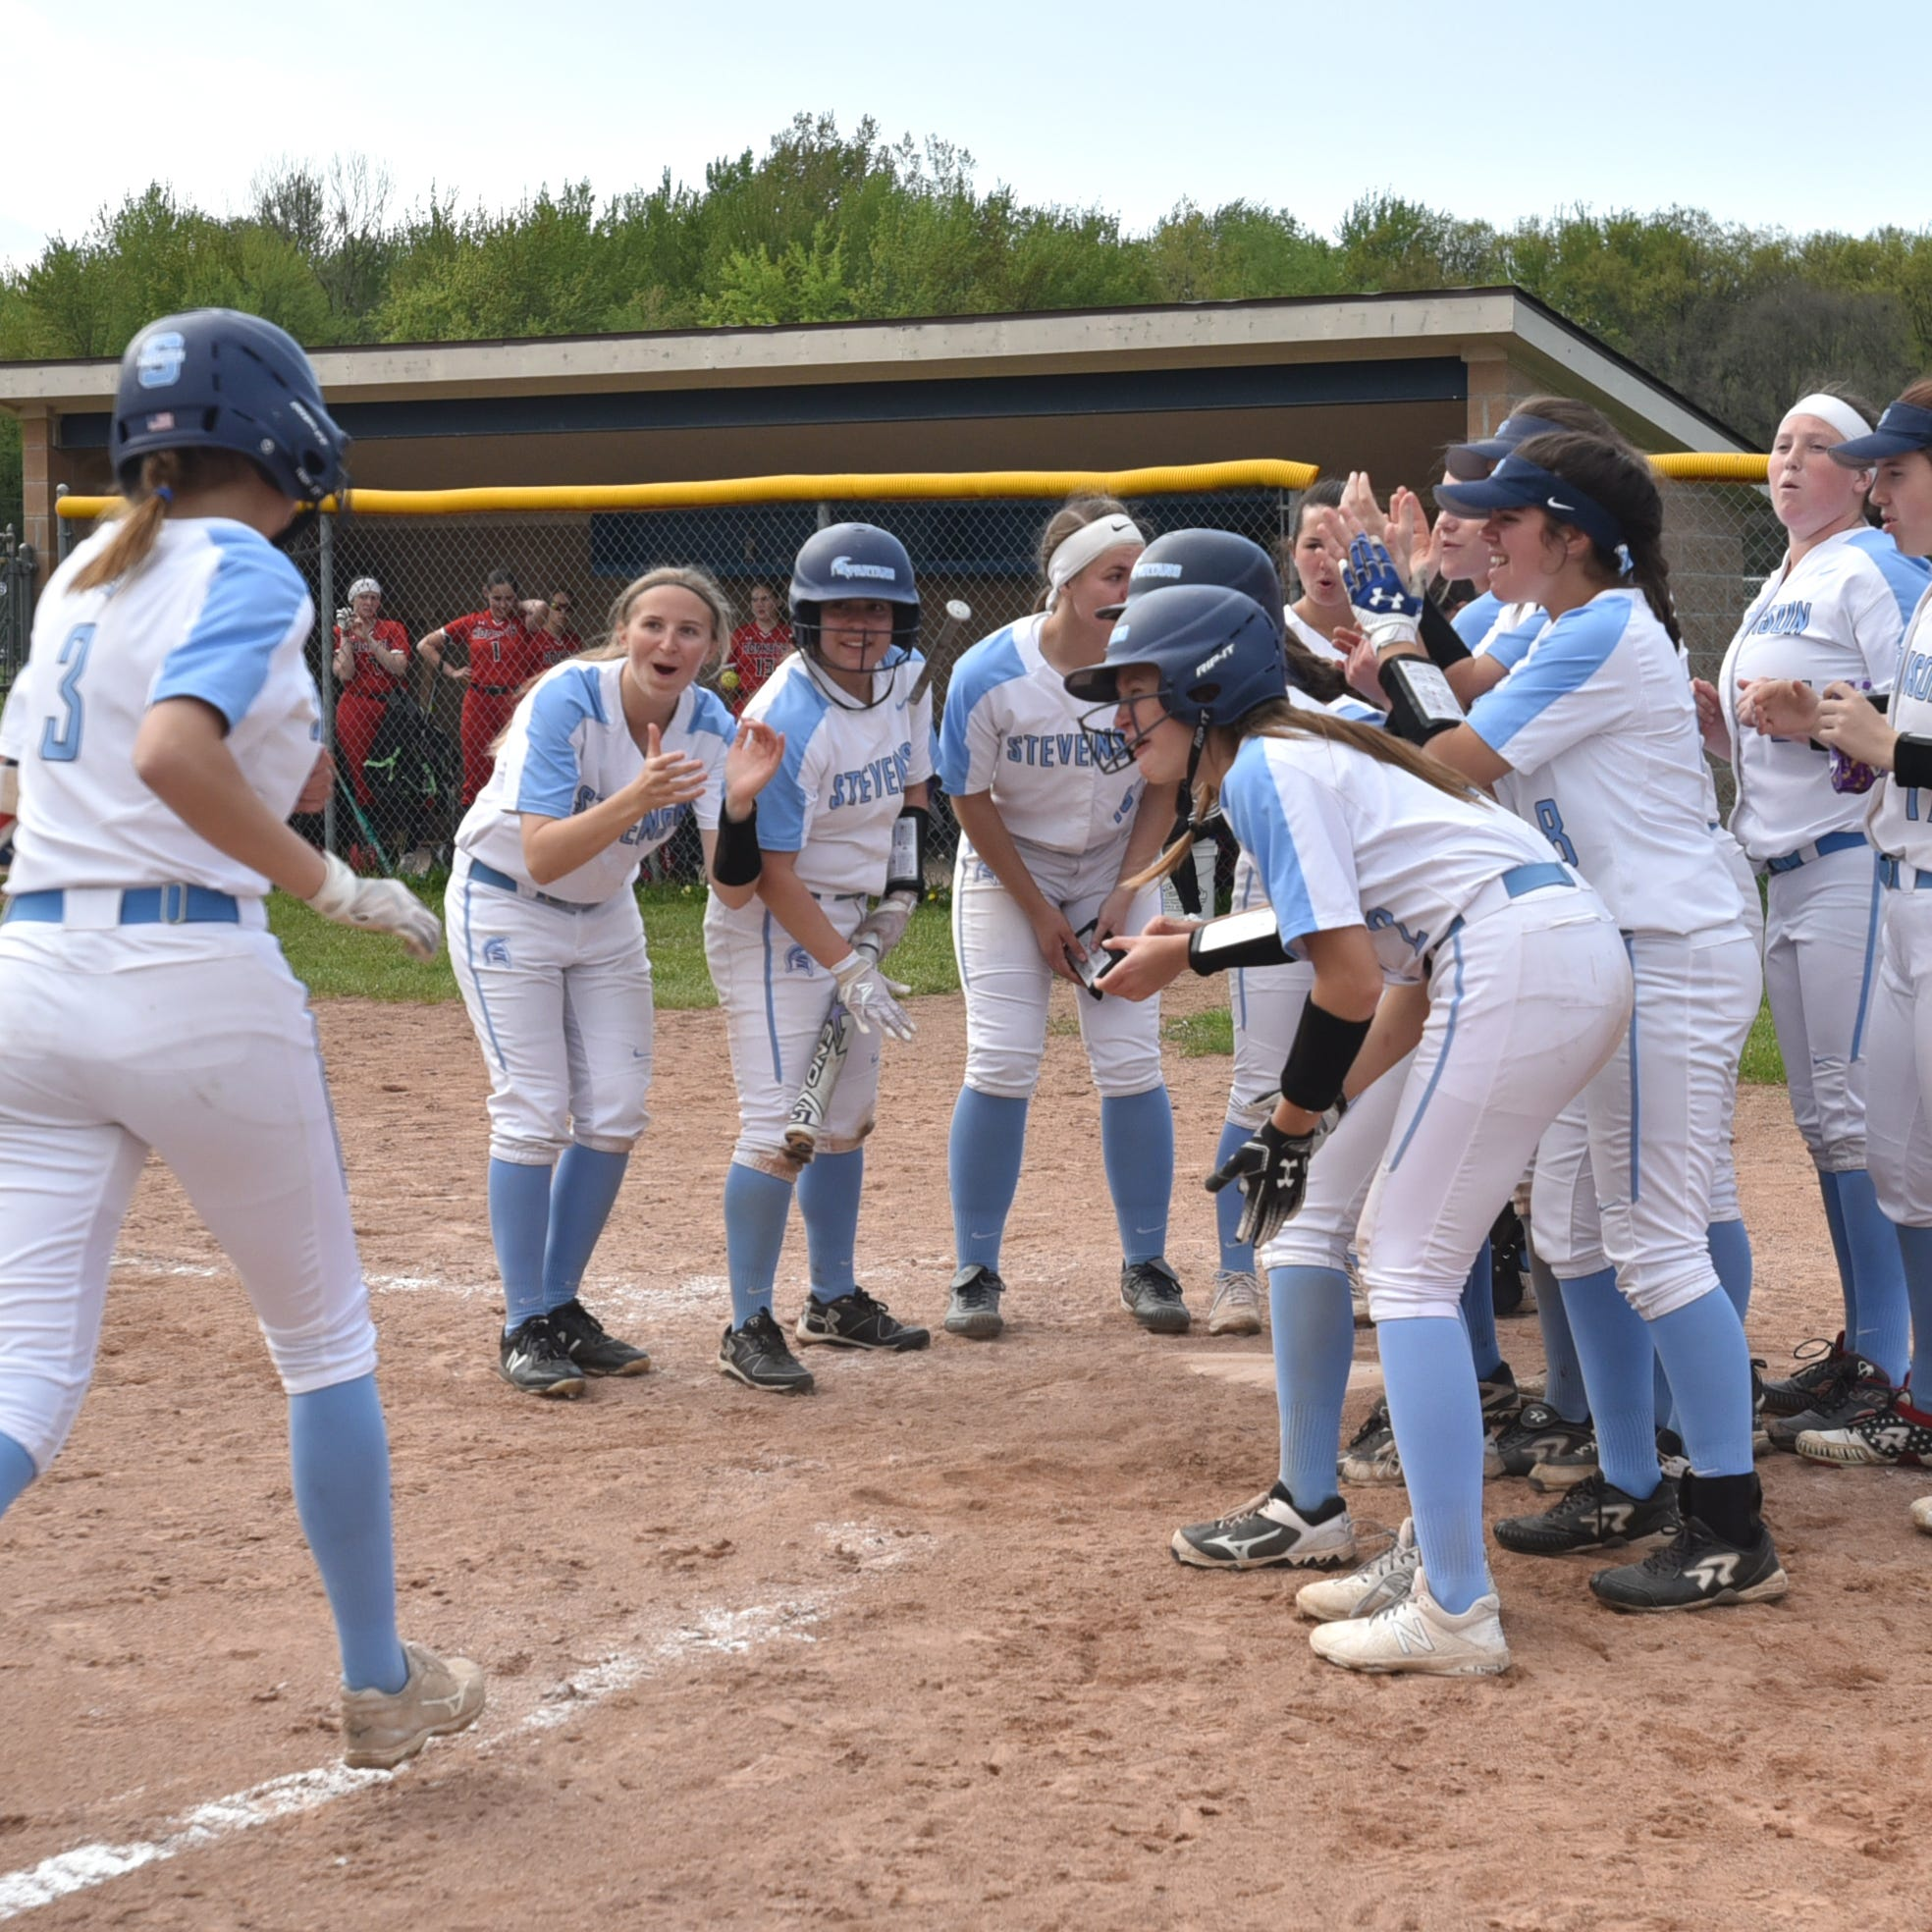 Livonia Stevenson softball wins division title for first time since 2006